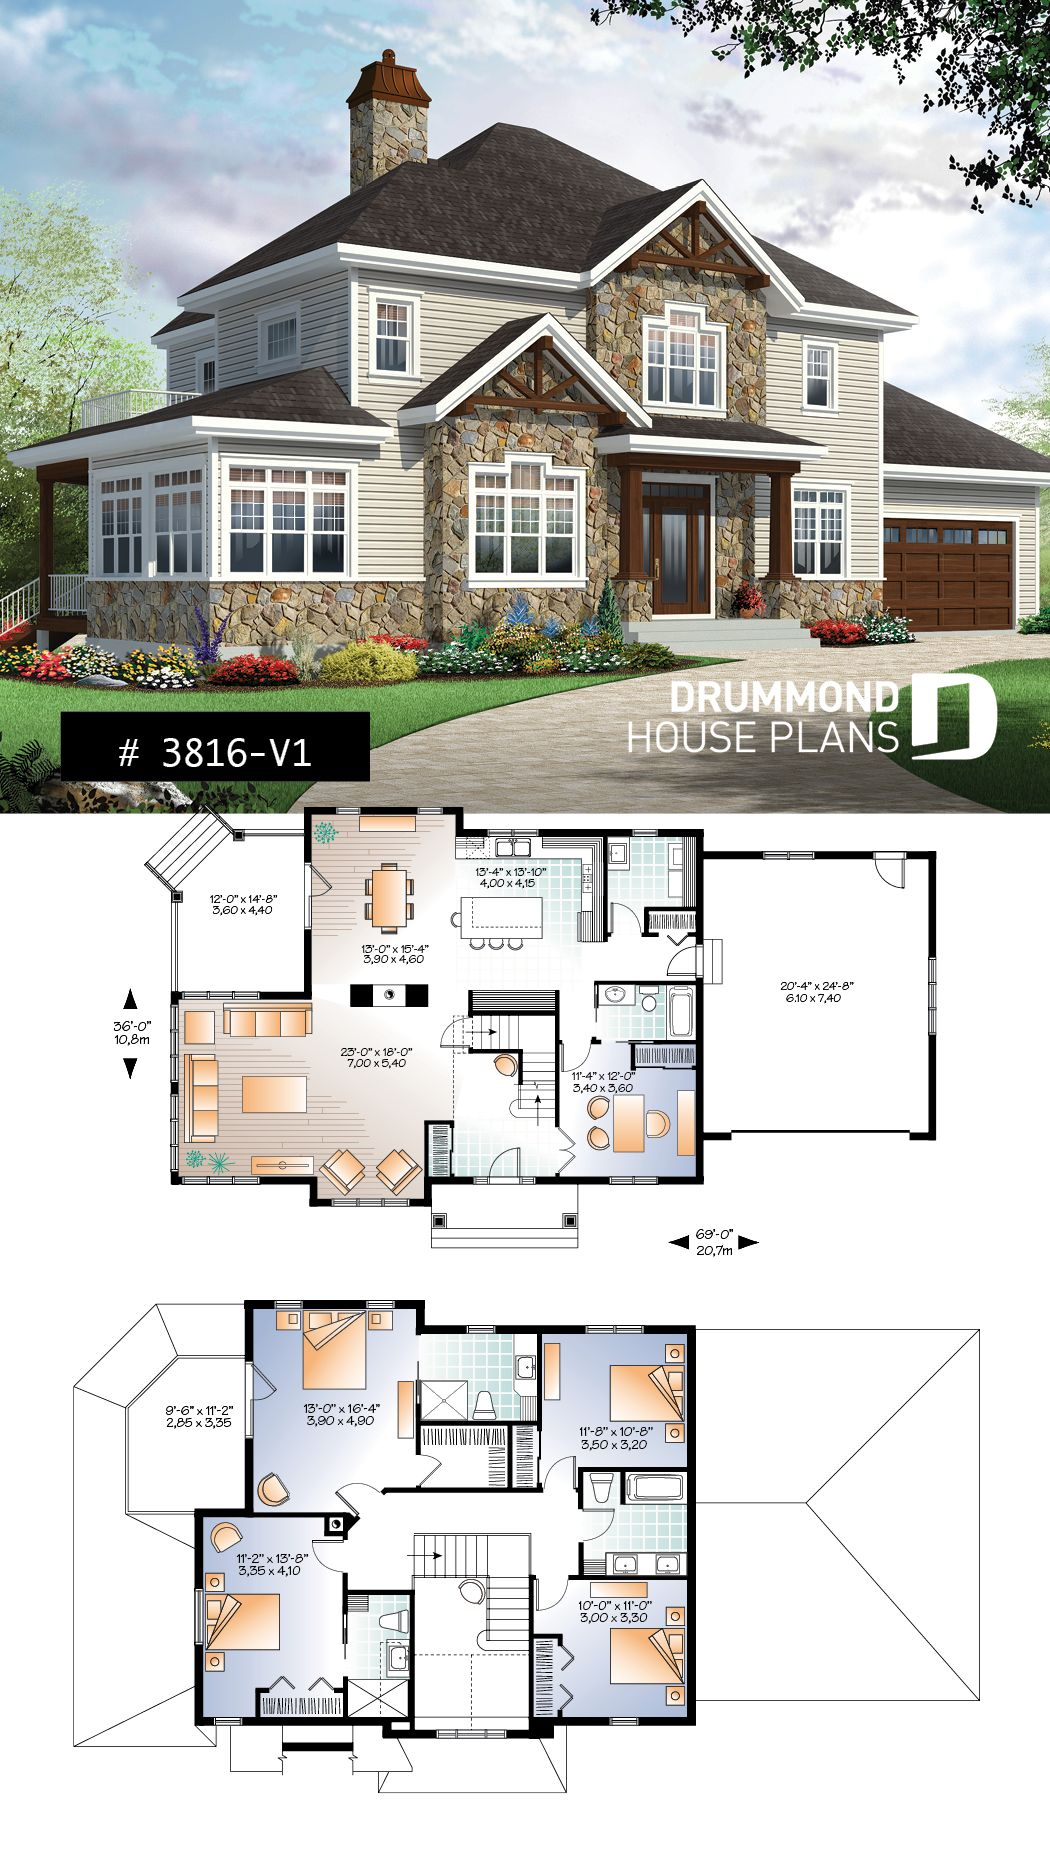 Two master suites craftsman house plan bedrooms bathrooms home office also best plans  images in dream rh pinterest